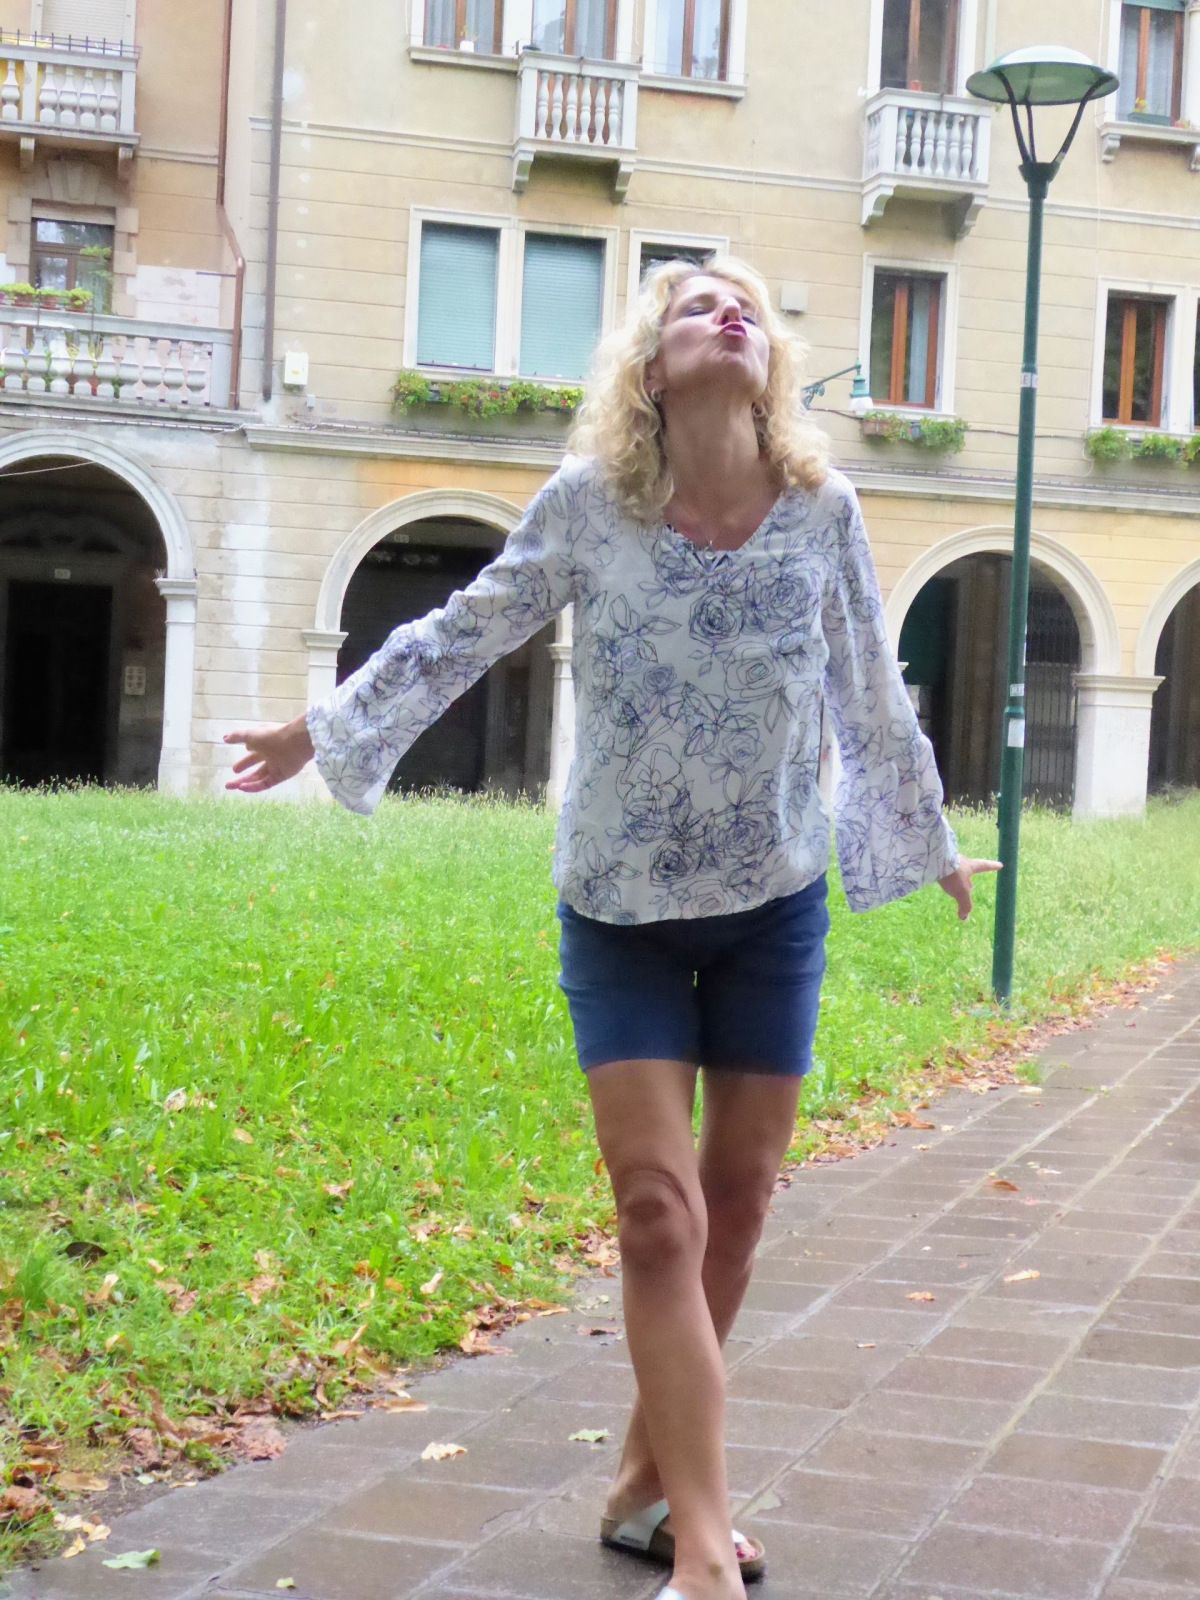 Mit Janis in Venice | Boho bluse, Italienreise und Schnittmuster bluse